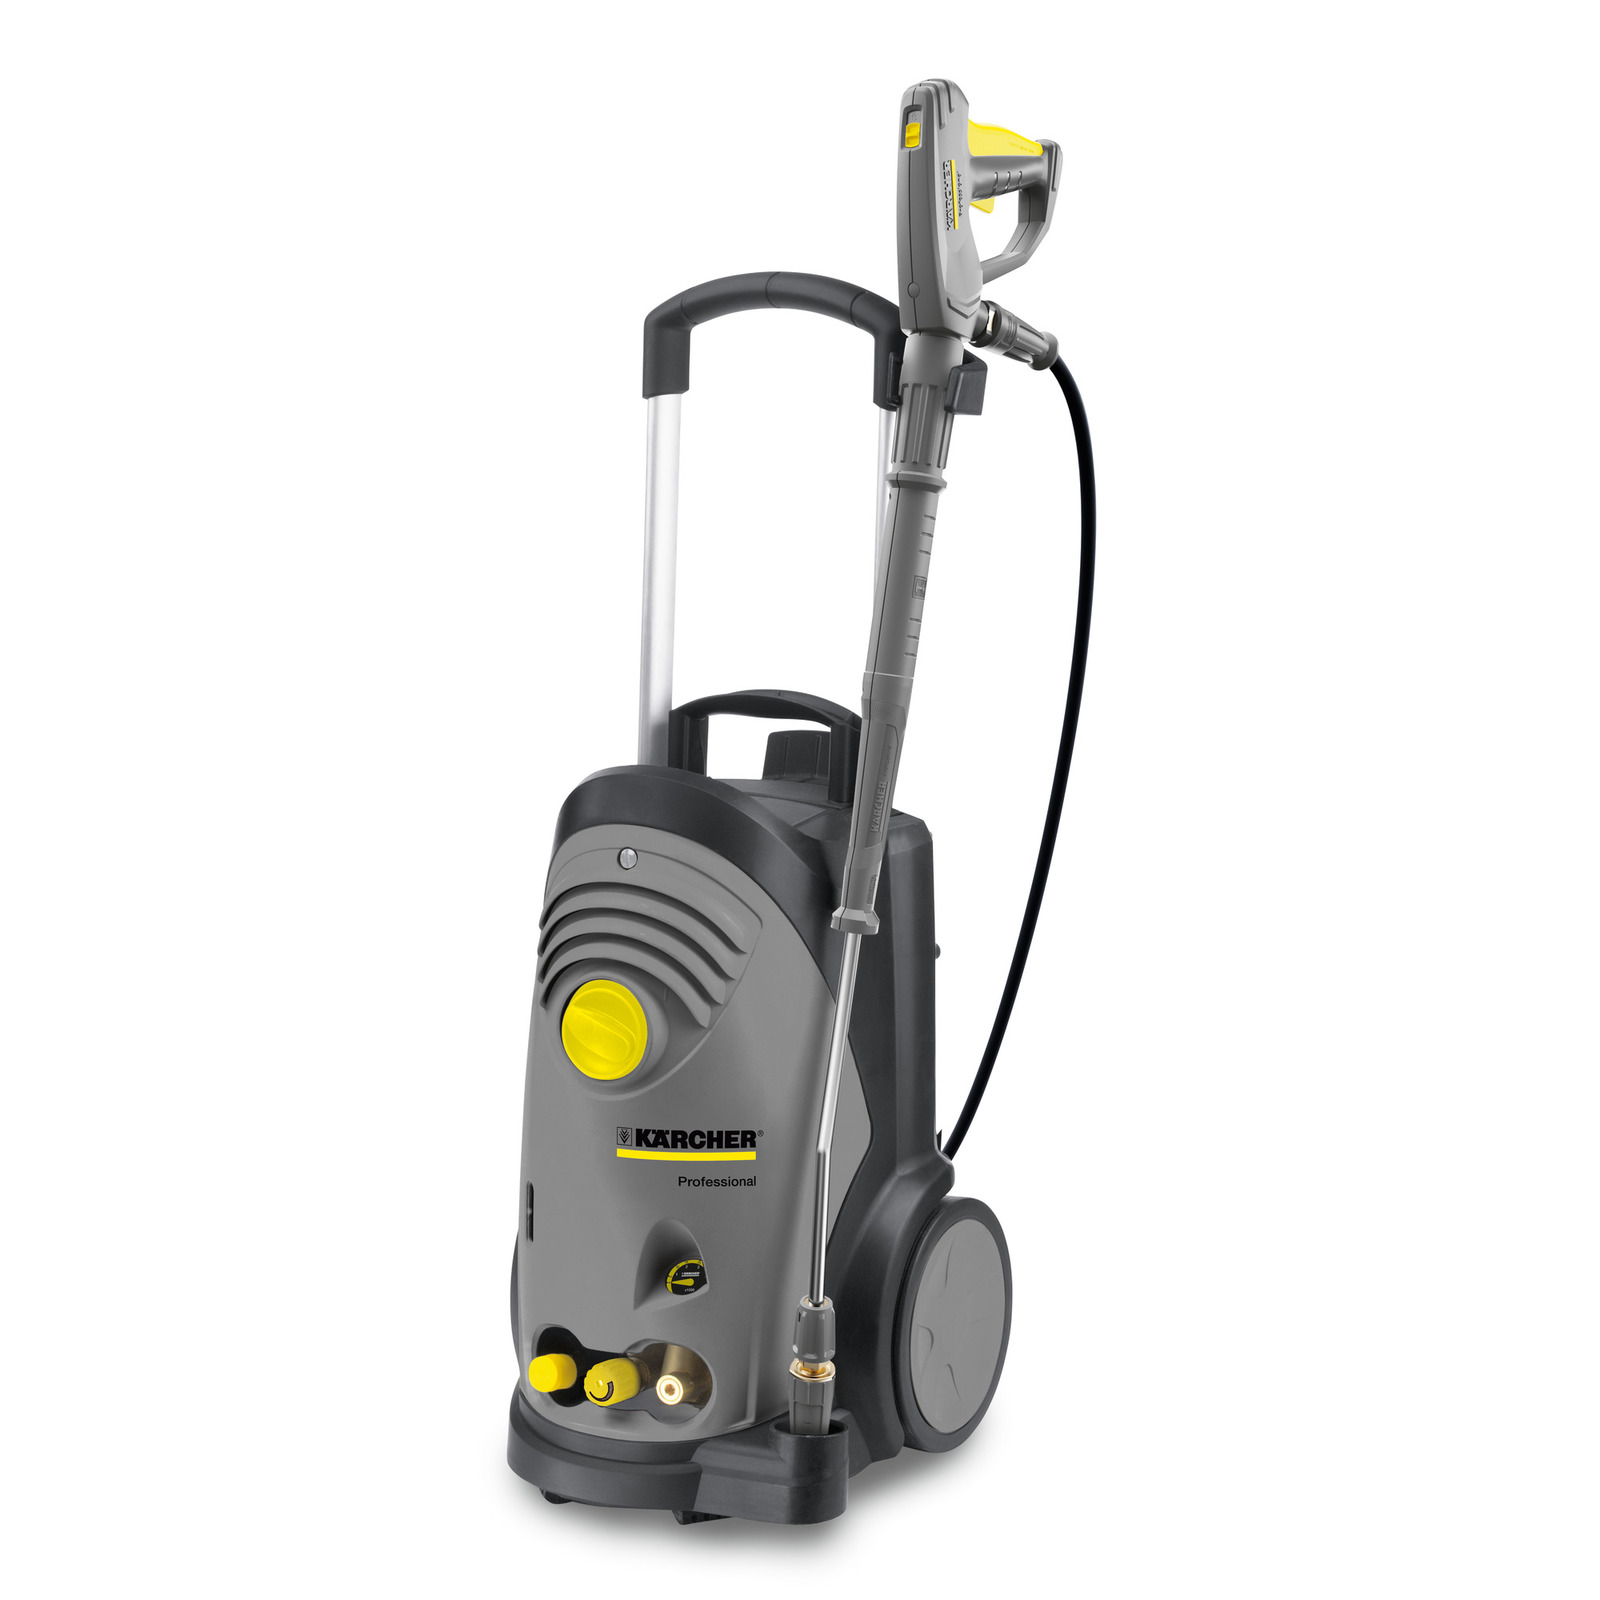 Karcher High Pressure Cold Water Cleaners - Single phase / 50 Hz - HD 6/12-4 C